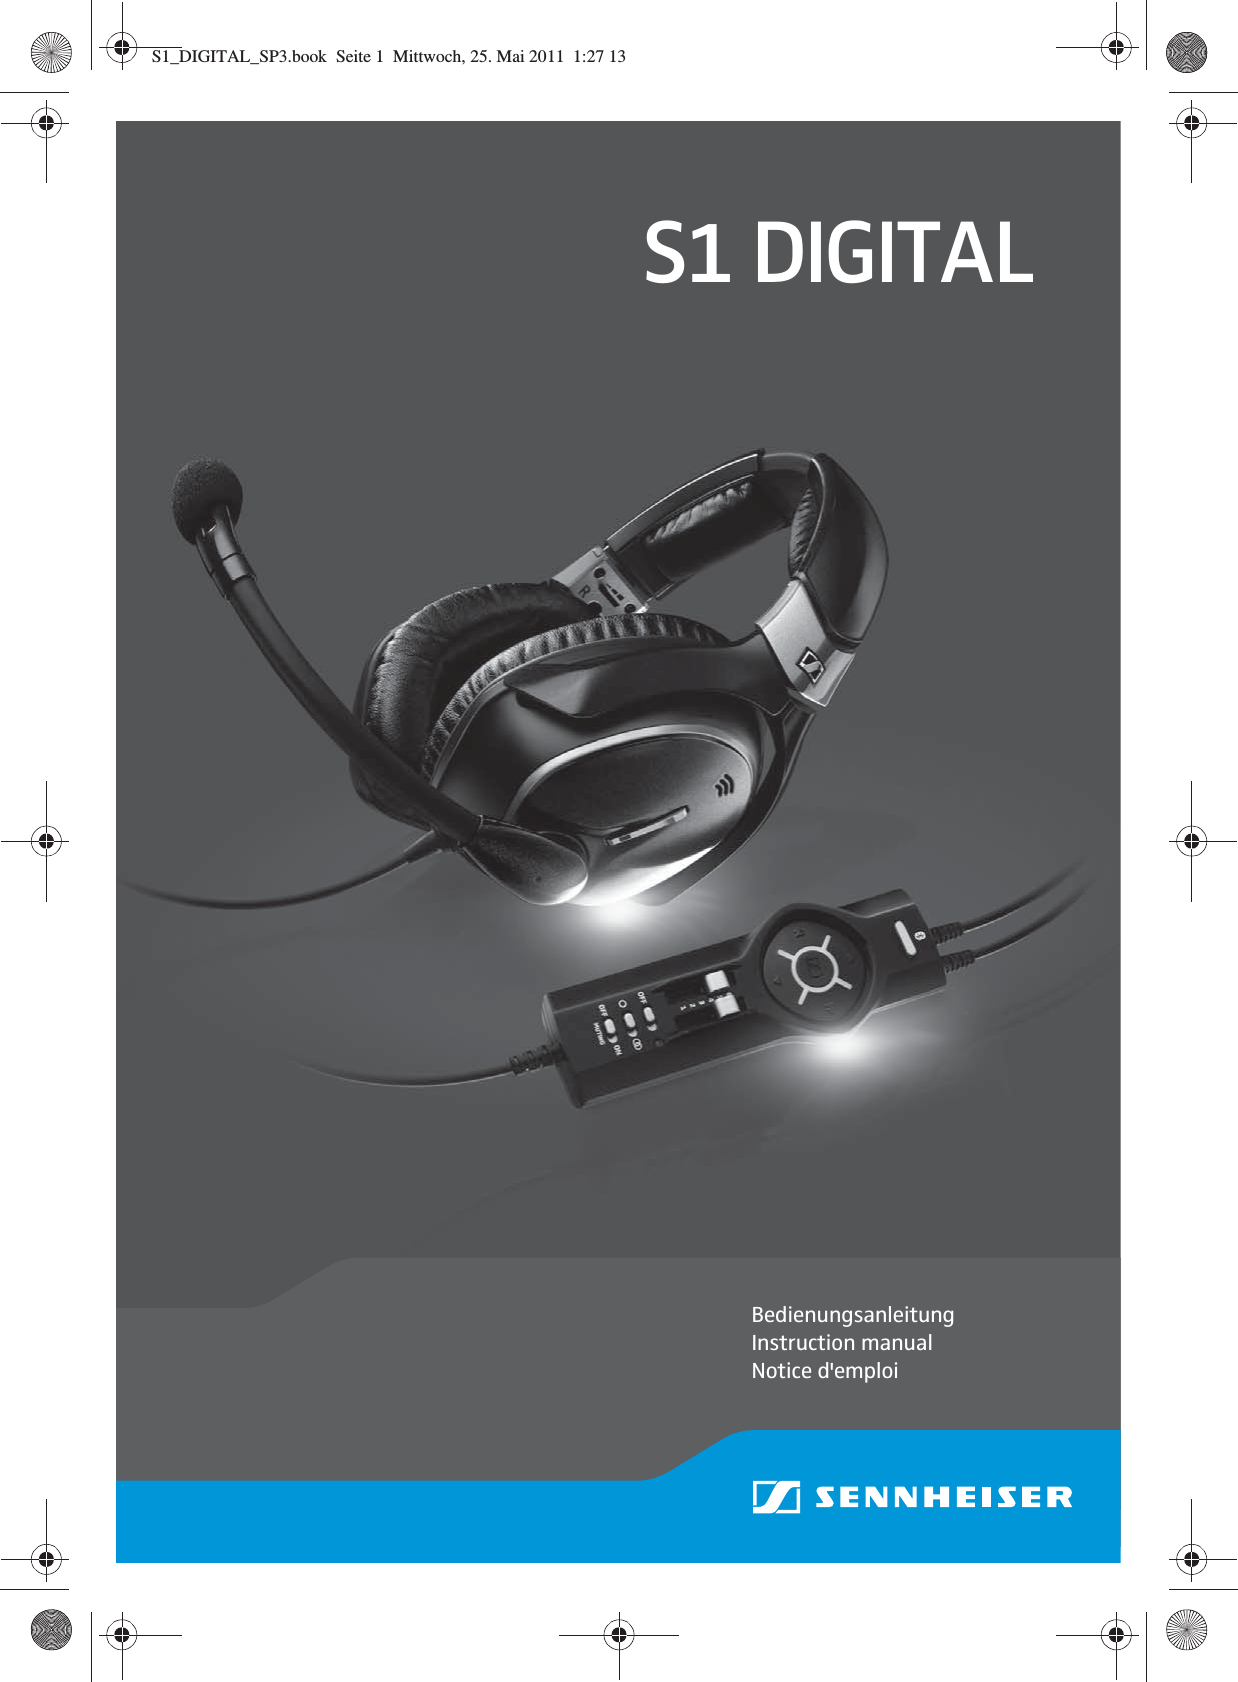 sennheiser electronic s1cw3011 aviation headset with noisegard rh usermanual wiki sennheiser e835 user manual sennheiser user guide